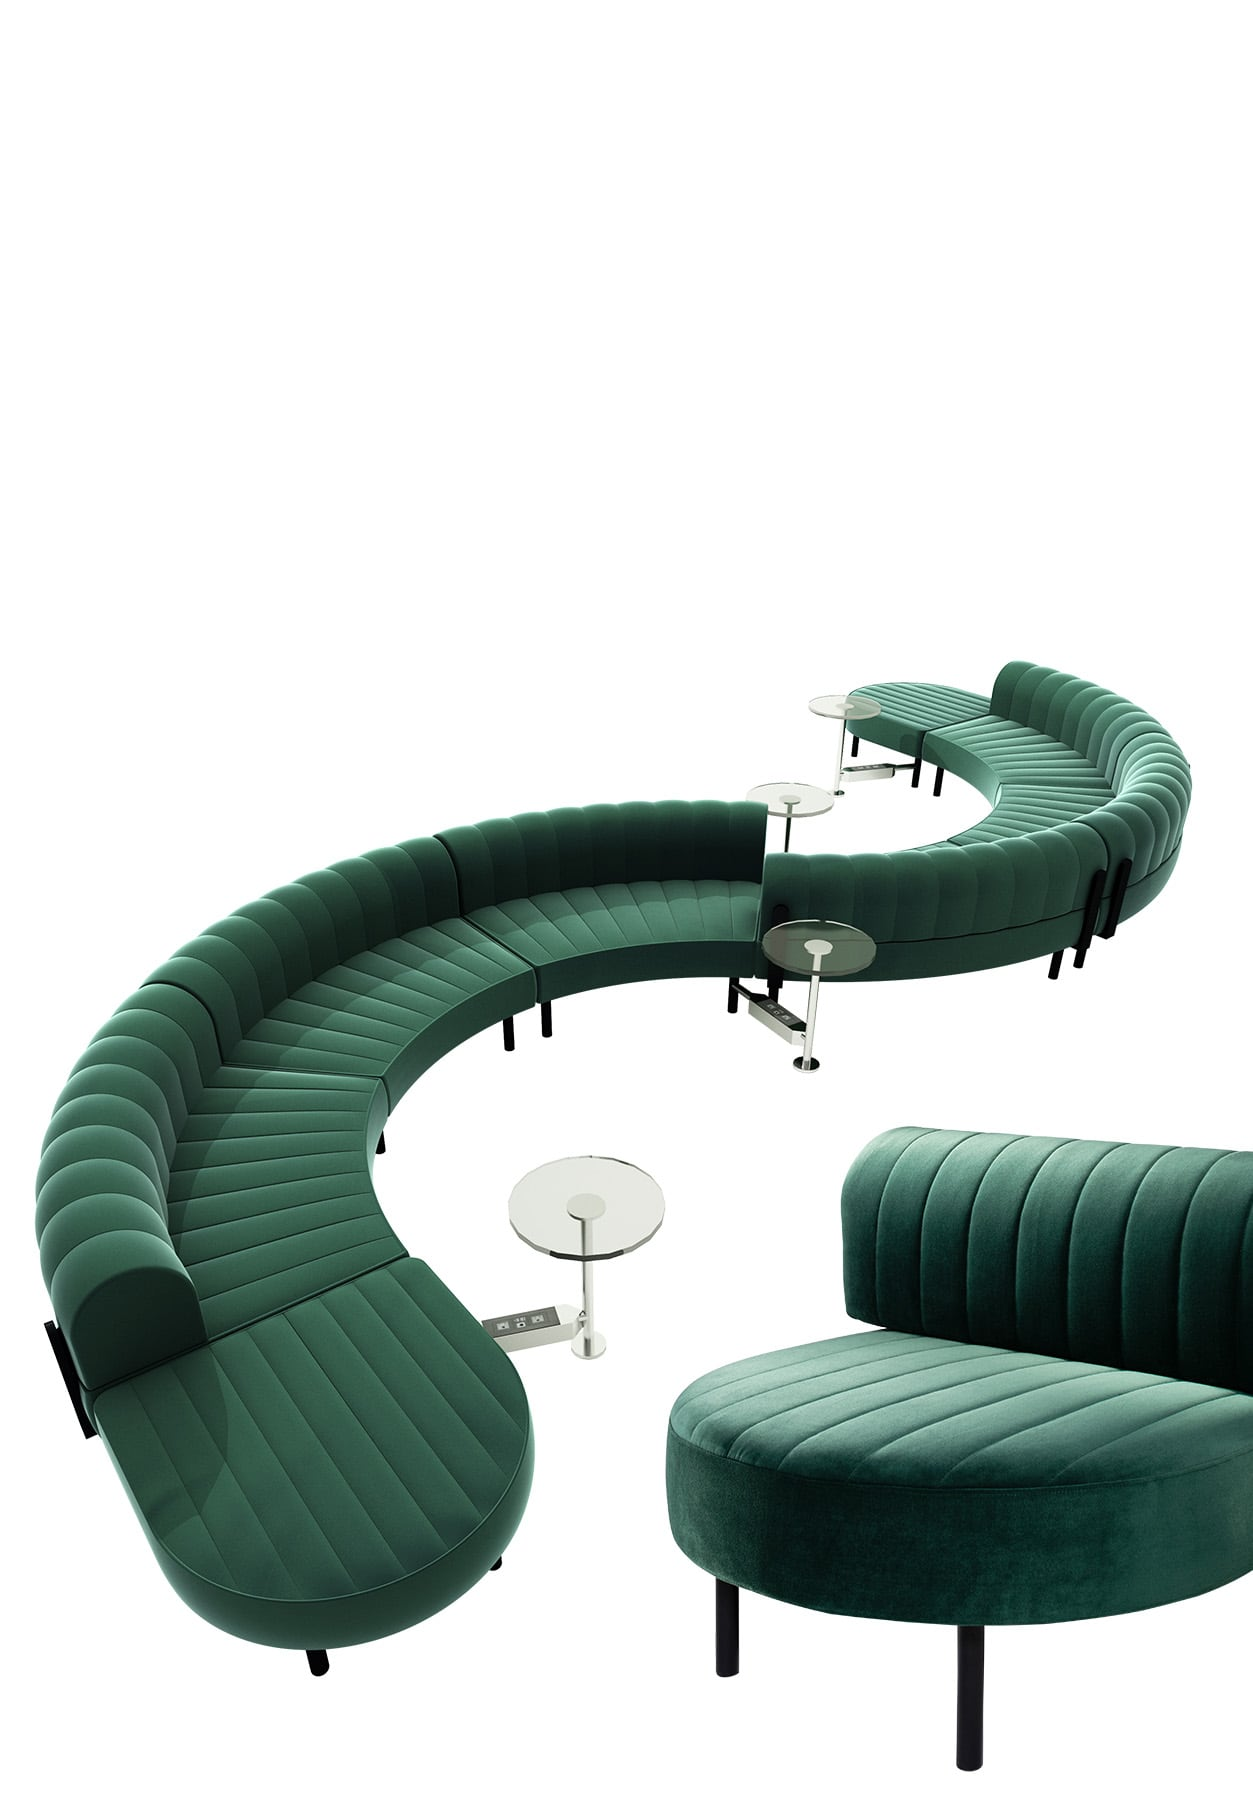 Emerald green rental furniture